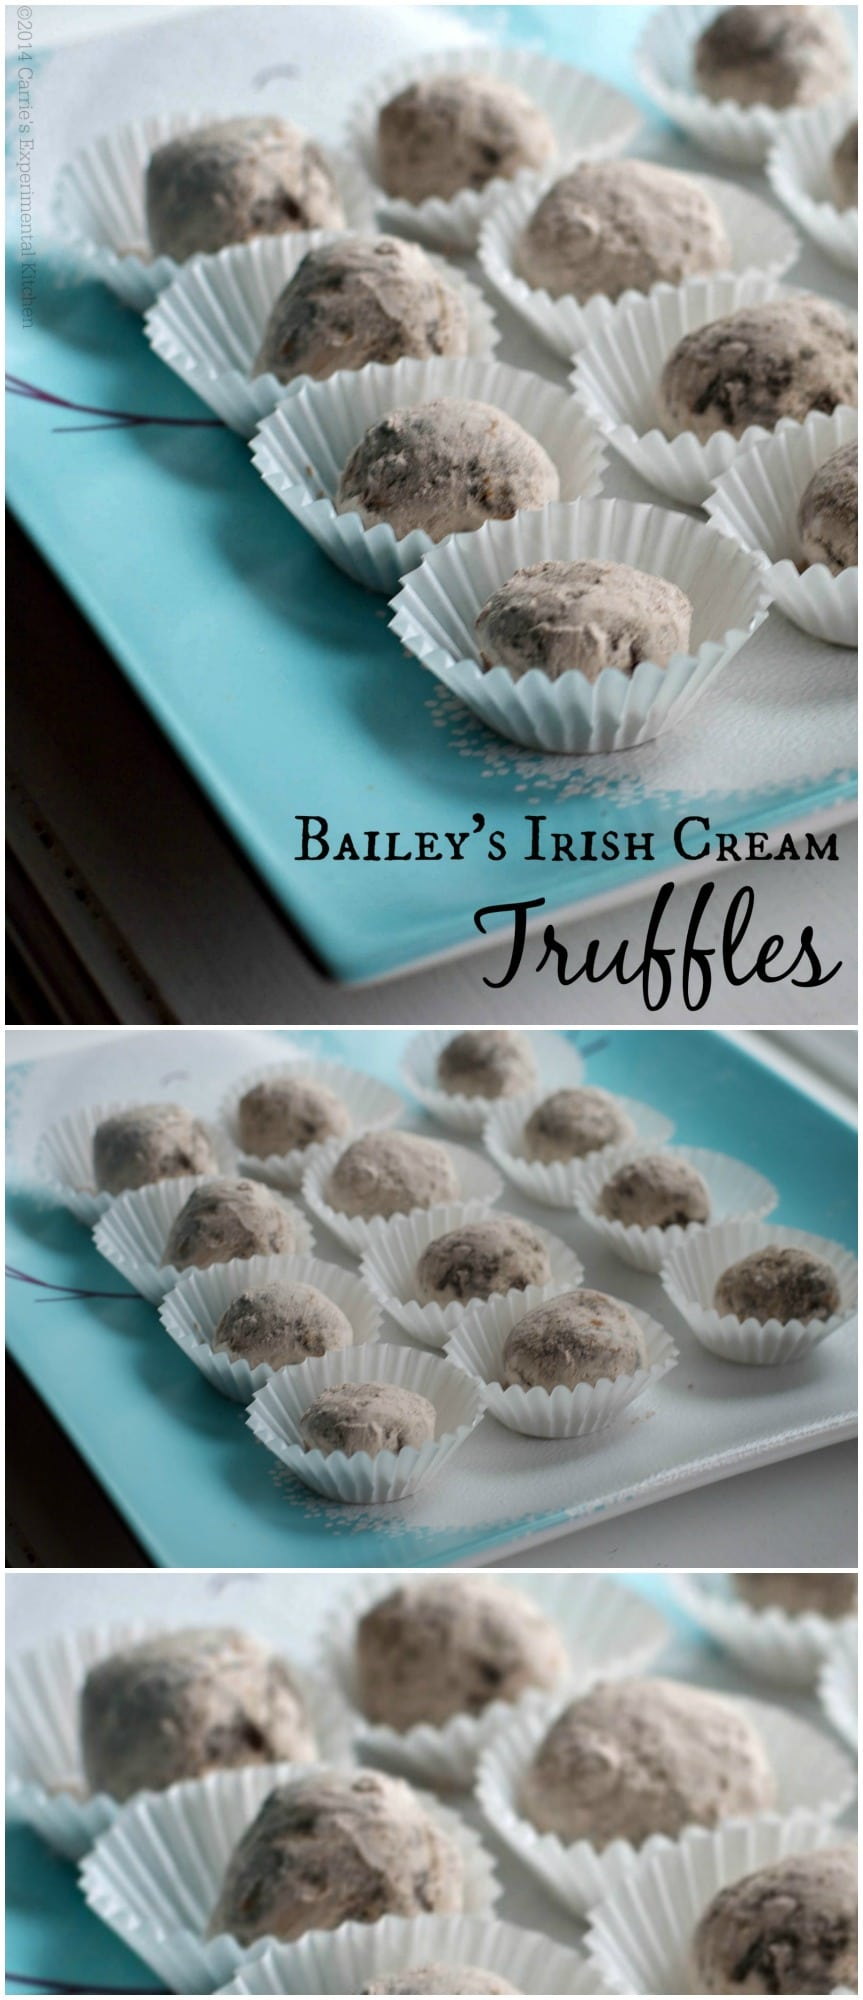 These rich and creamy Bailey's Irish Cream Truffles are so good and perfect for any holiday or special occasion. #dessert #truffles #chocolate #baileys #irishcream